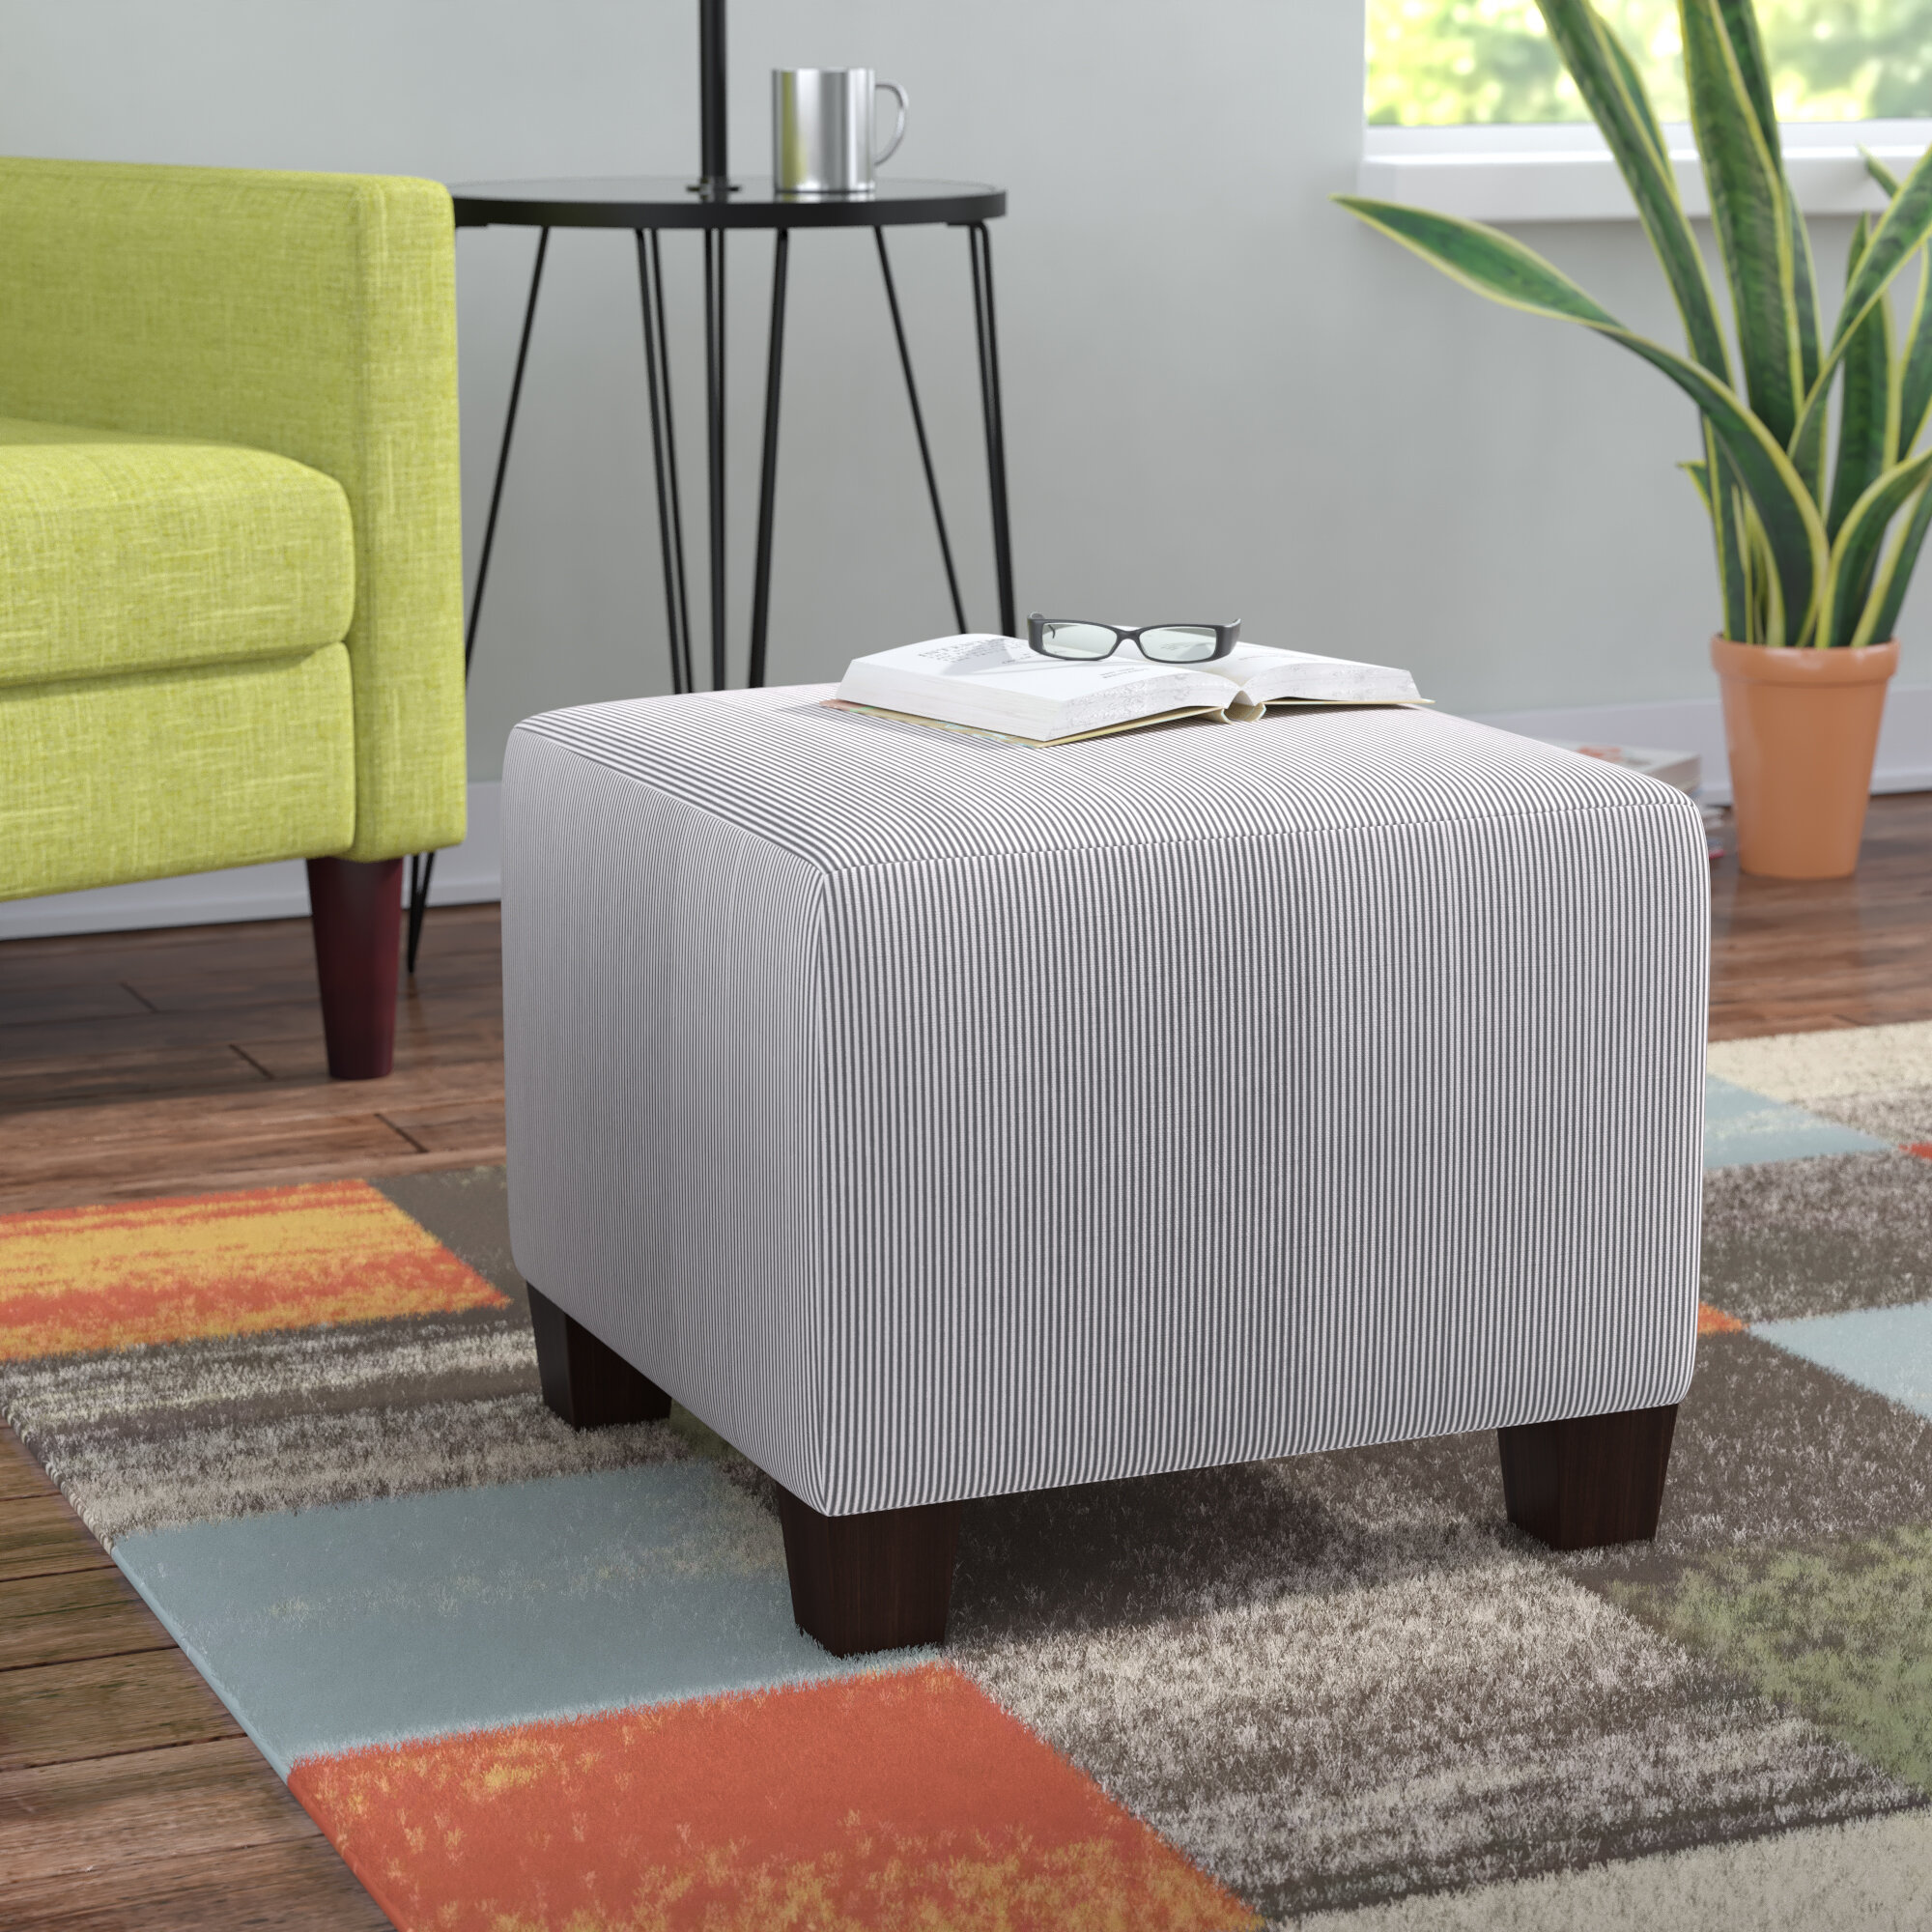 Brayden Studio Oxford Ottoman Reviews Wayfair